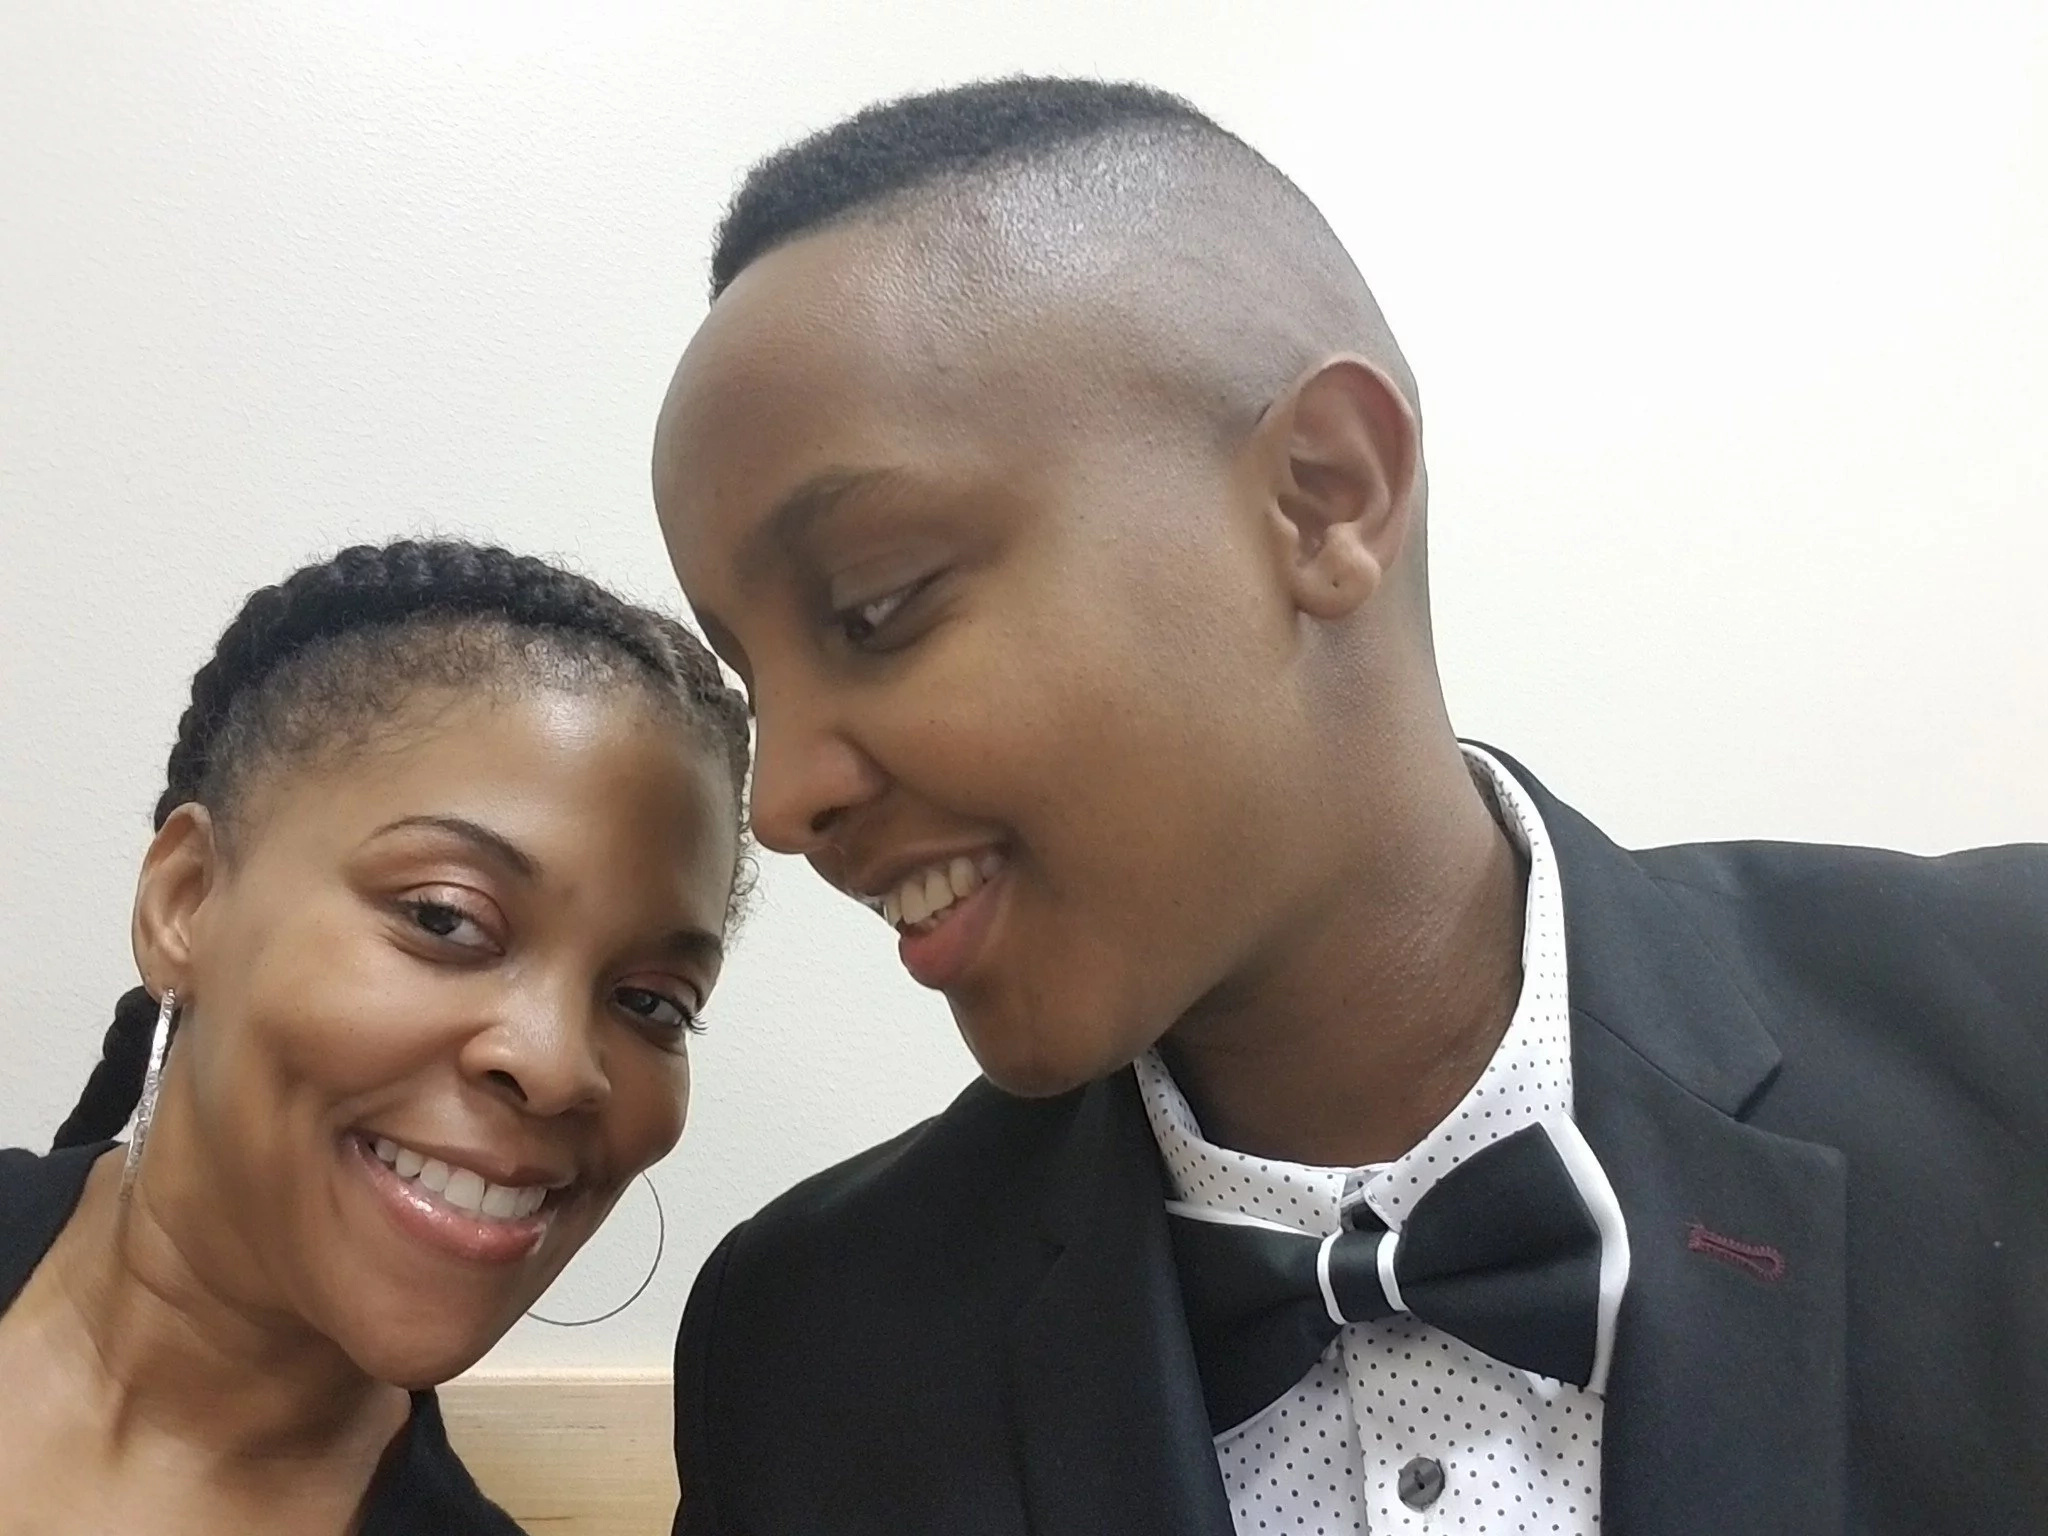 Kenyan lesbian gets married to American beauty in simple wedding